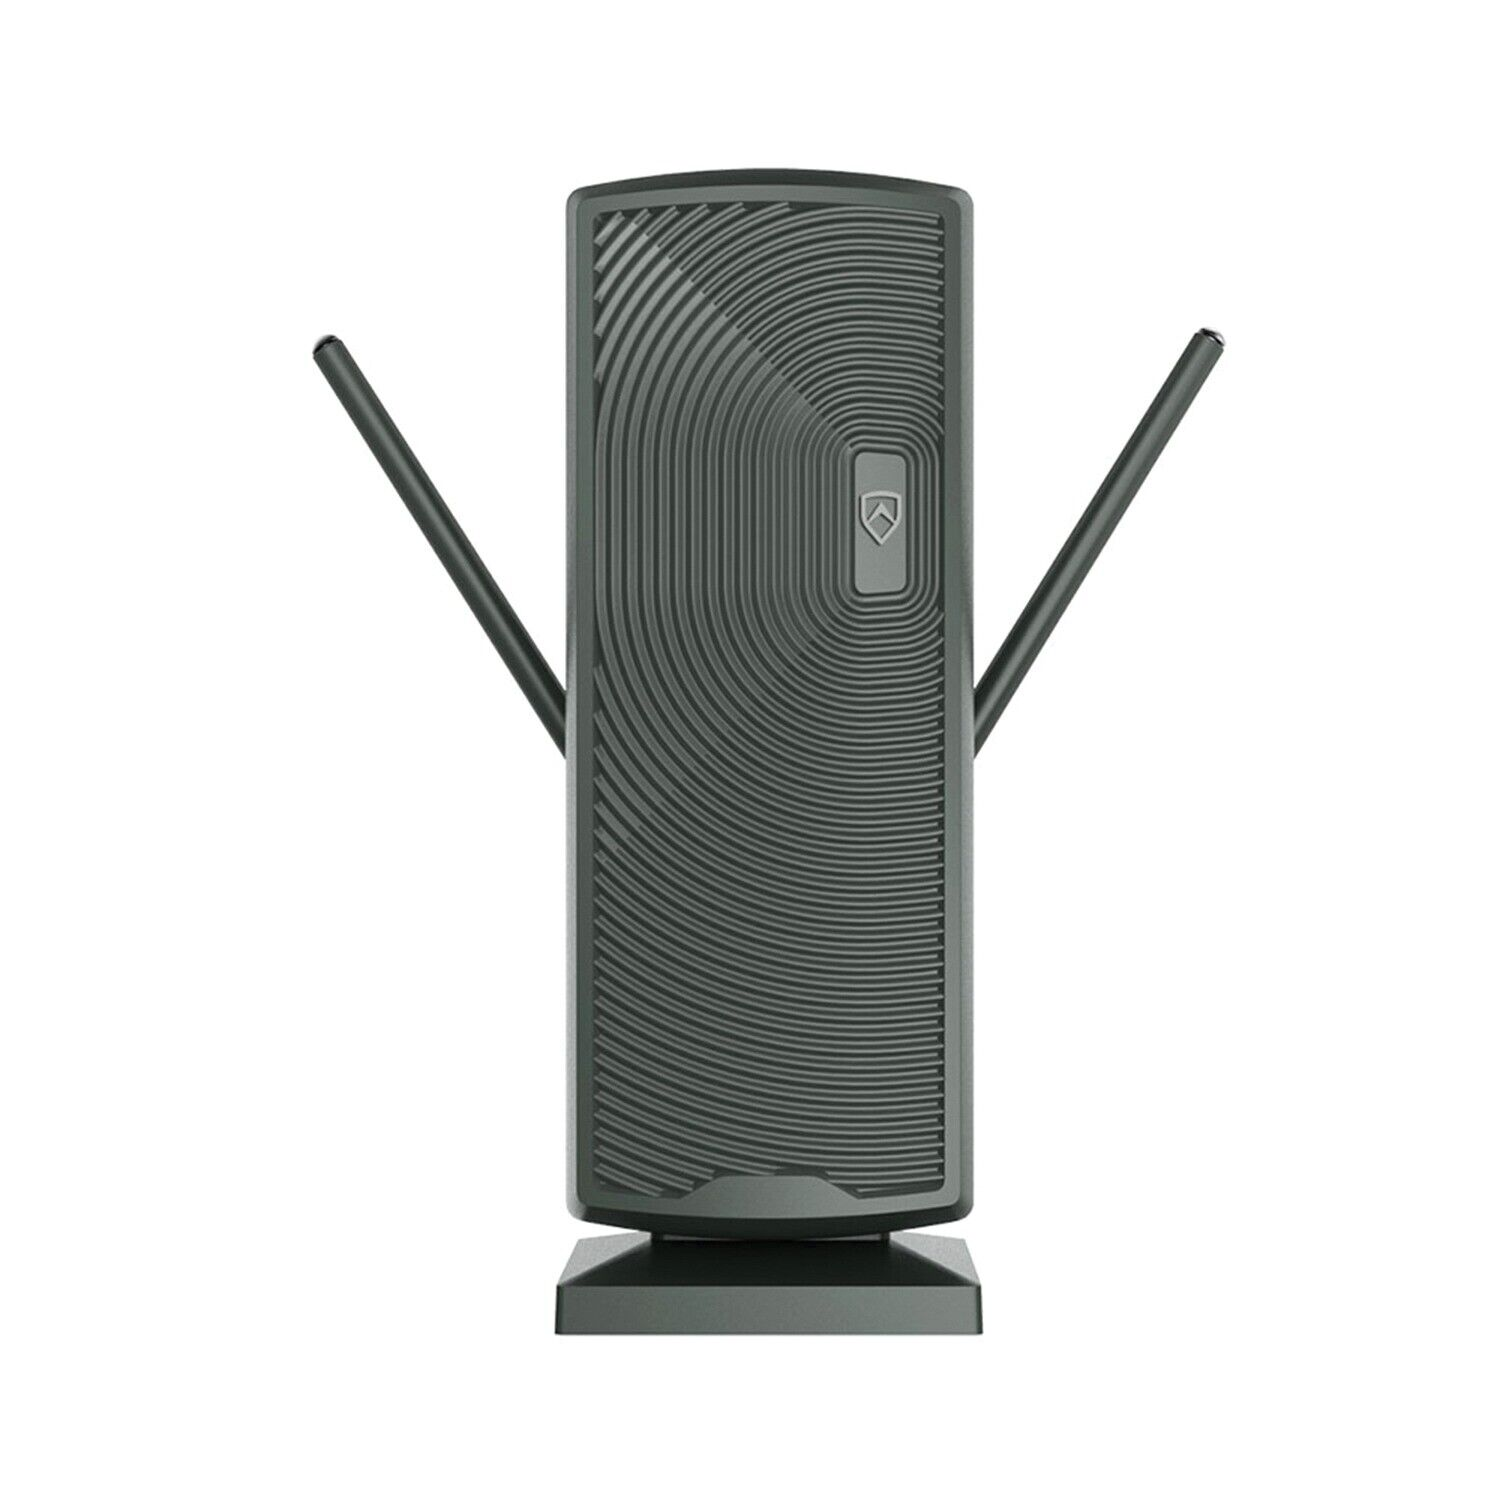 Antop AT-405BVDG[r] Antenna Inc. At-405bv Dg At-405bv Smartpass-amplified Mini. Available Now for 89.99